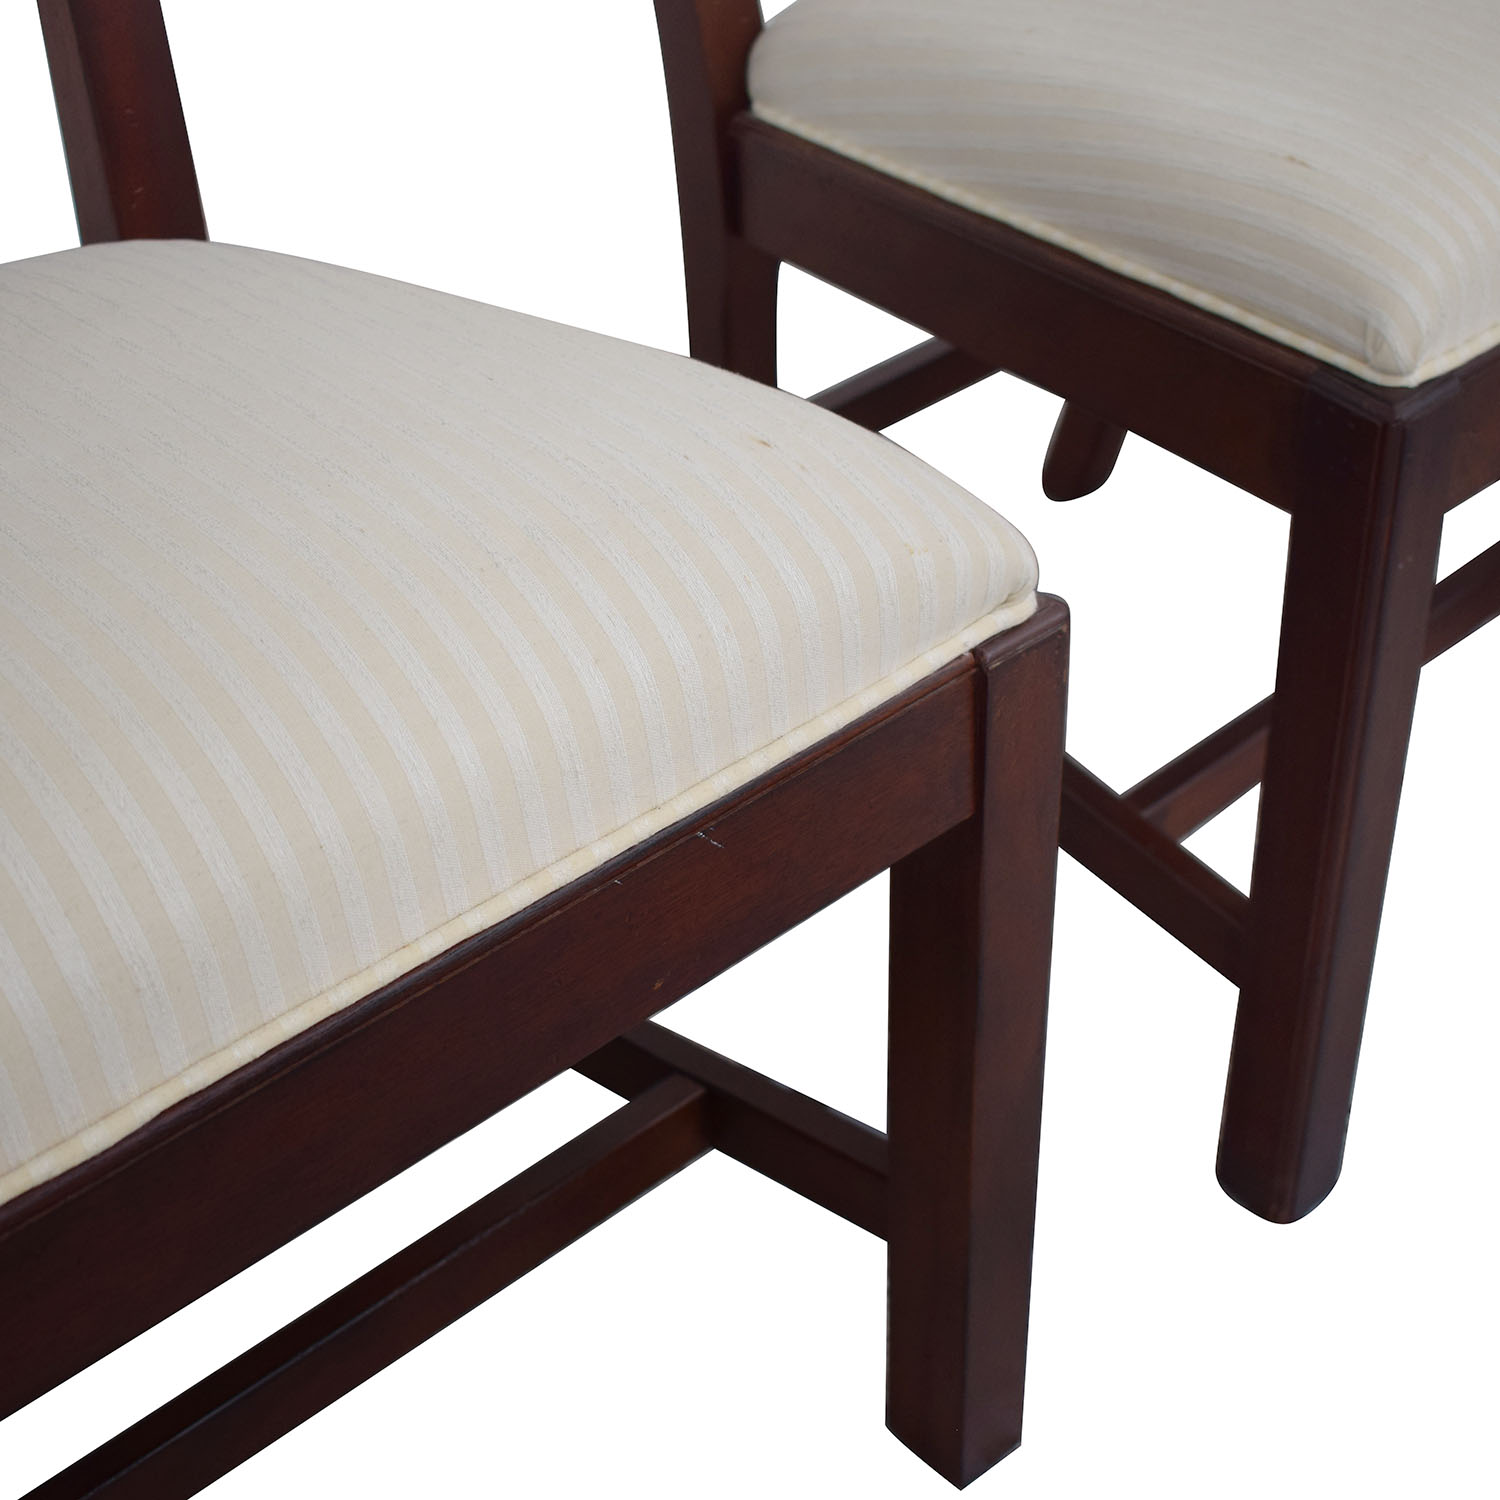 Drexel Heritage Upholstered Dining Chairs / Chairs